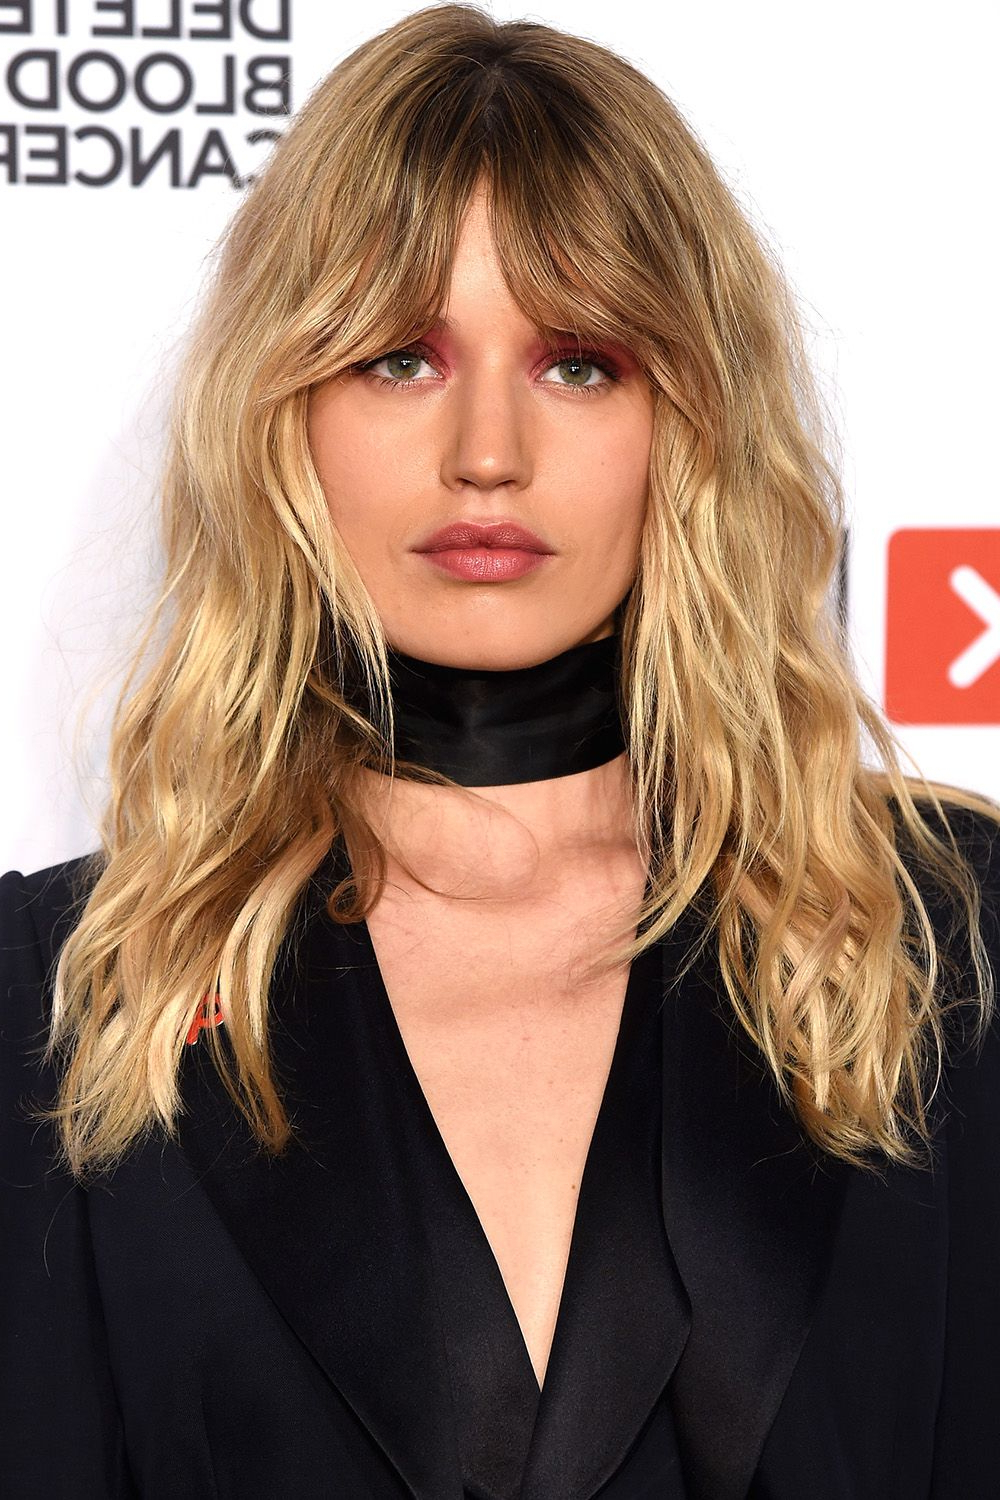 40 Best Medium Hairstyles – Celebrities With Shoulder Length Haircuts In 2017 Medium Haircuts With Bangs (View 3 of 20)